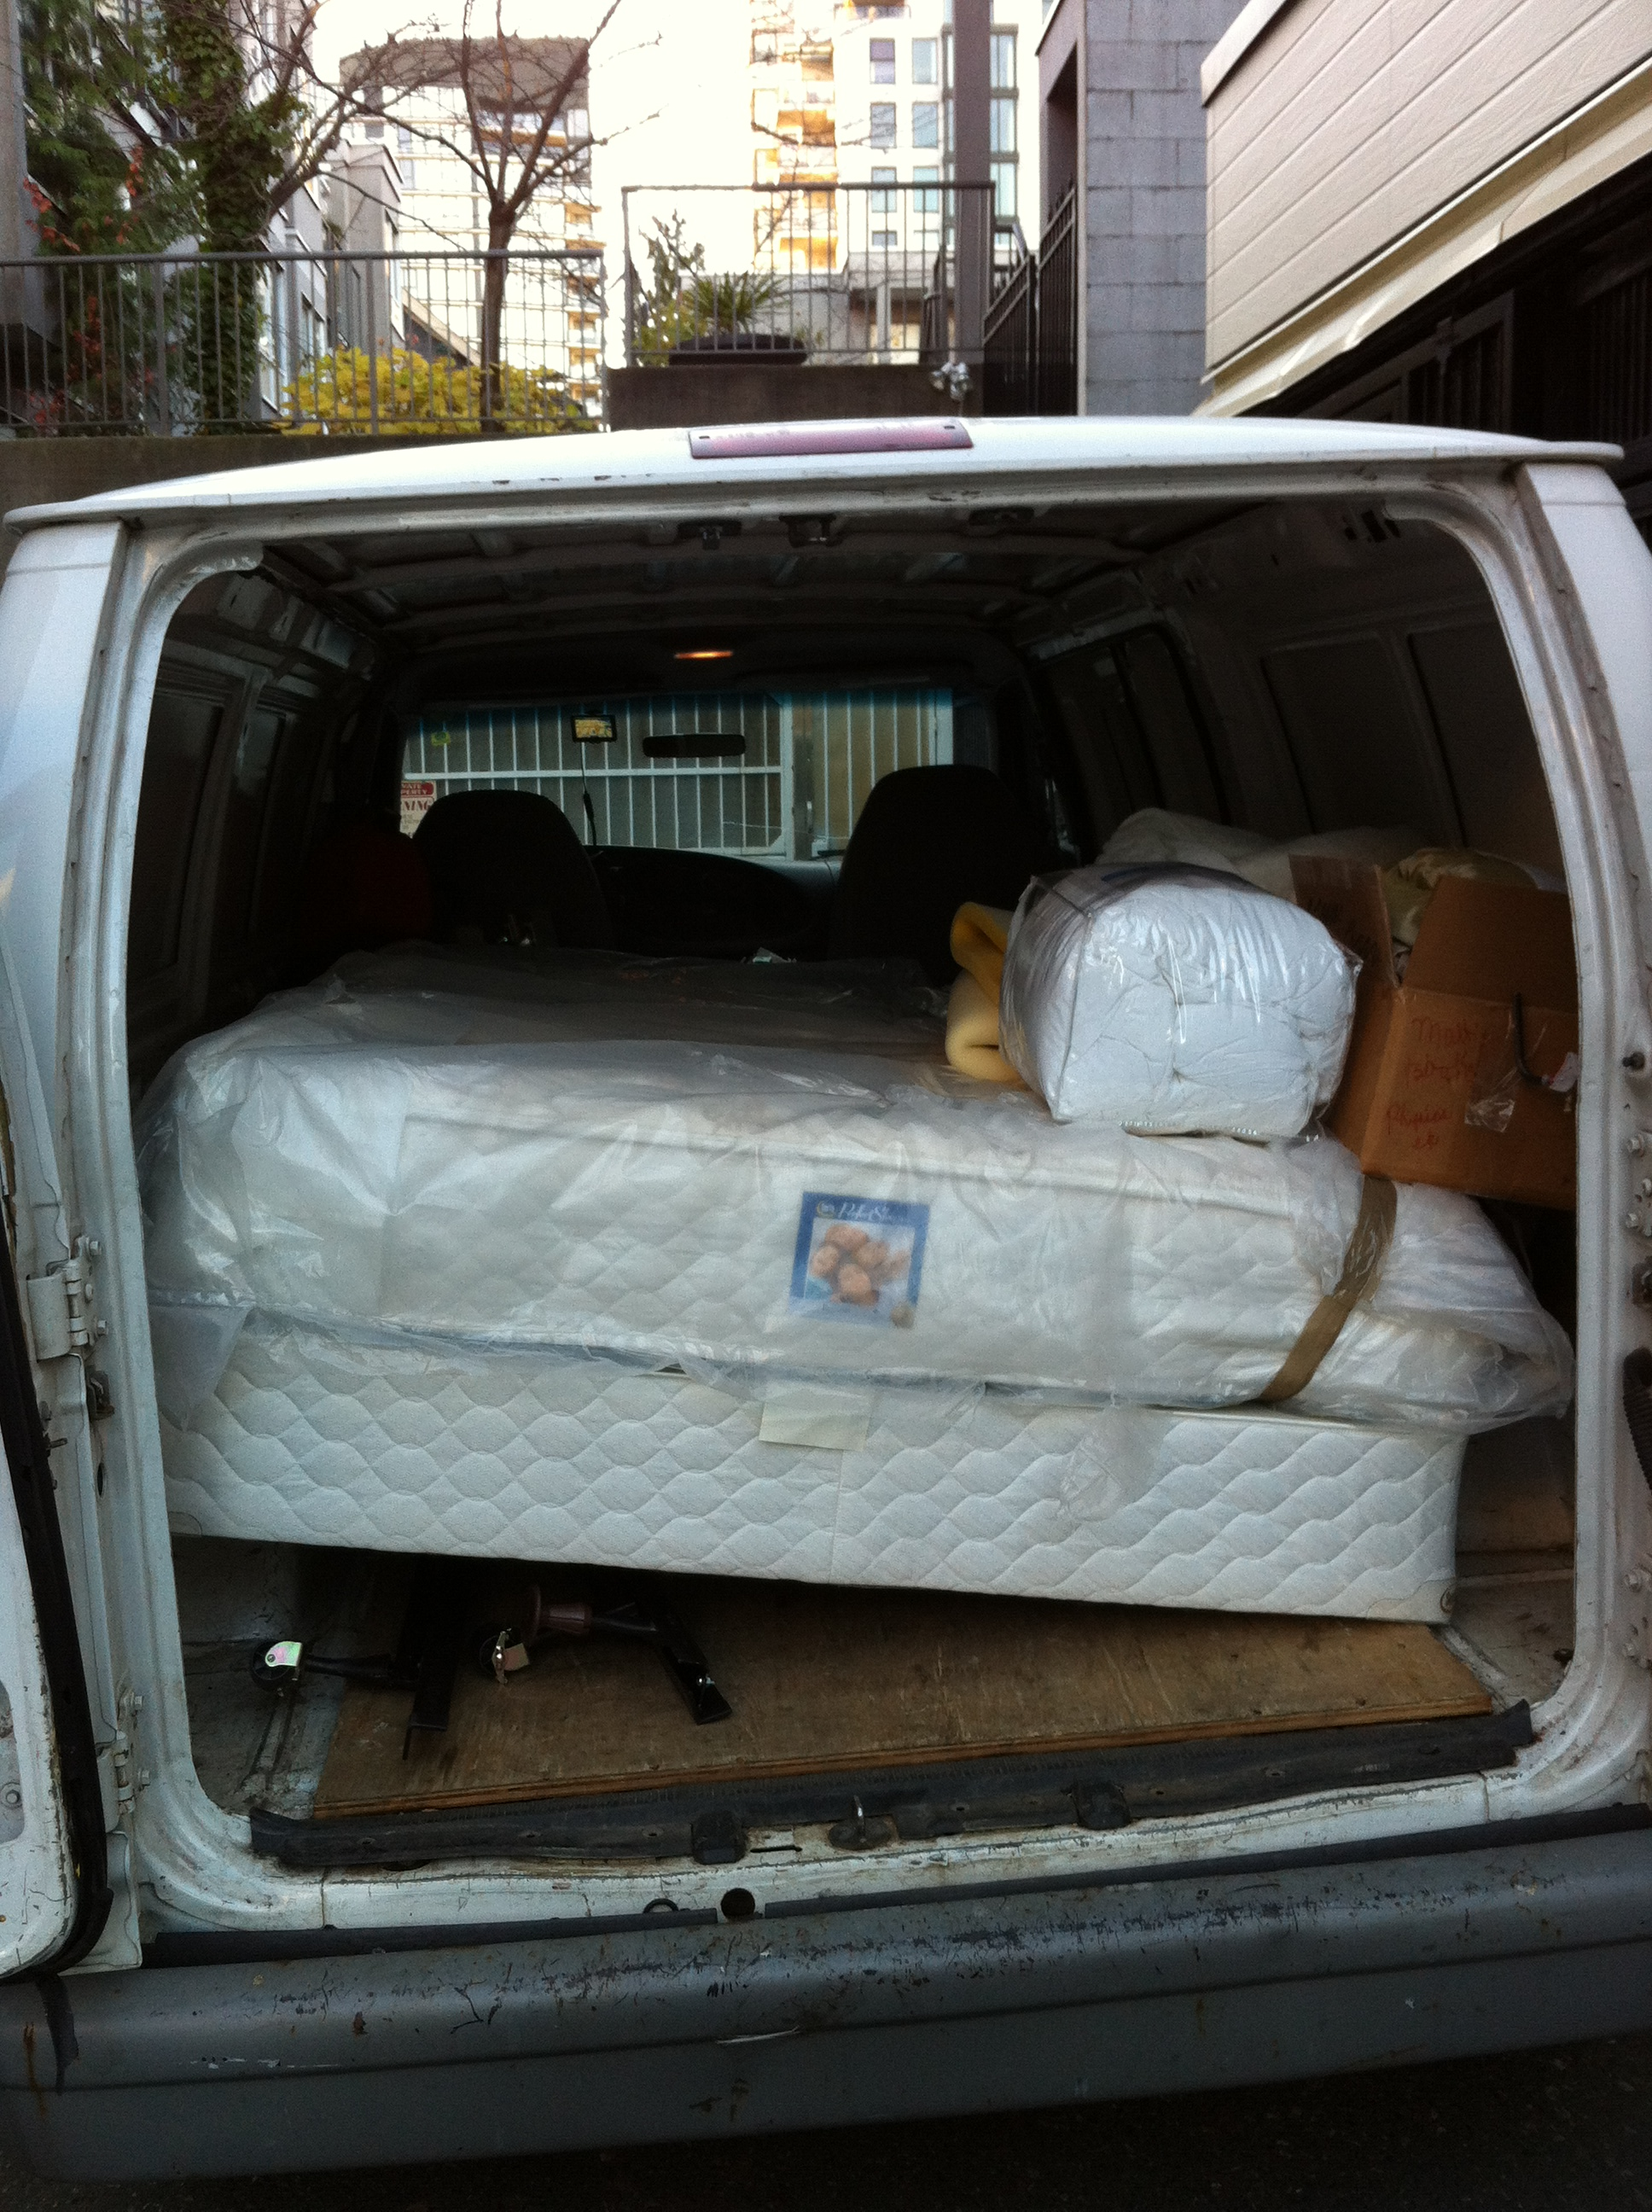 Inspiration Furniture Delivery Vancouver Sam 39 S Small Moves Ltd Cheap Delivery Small Moves